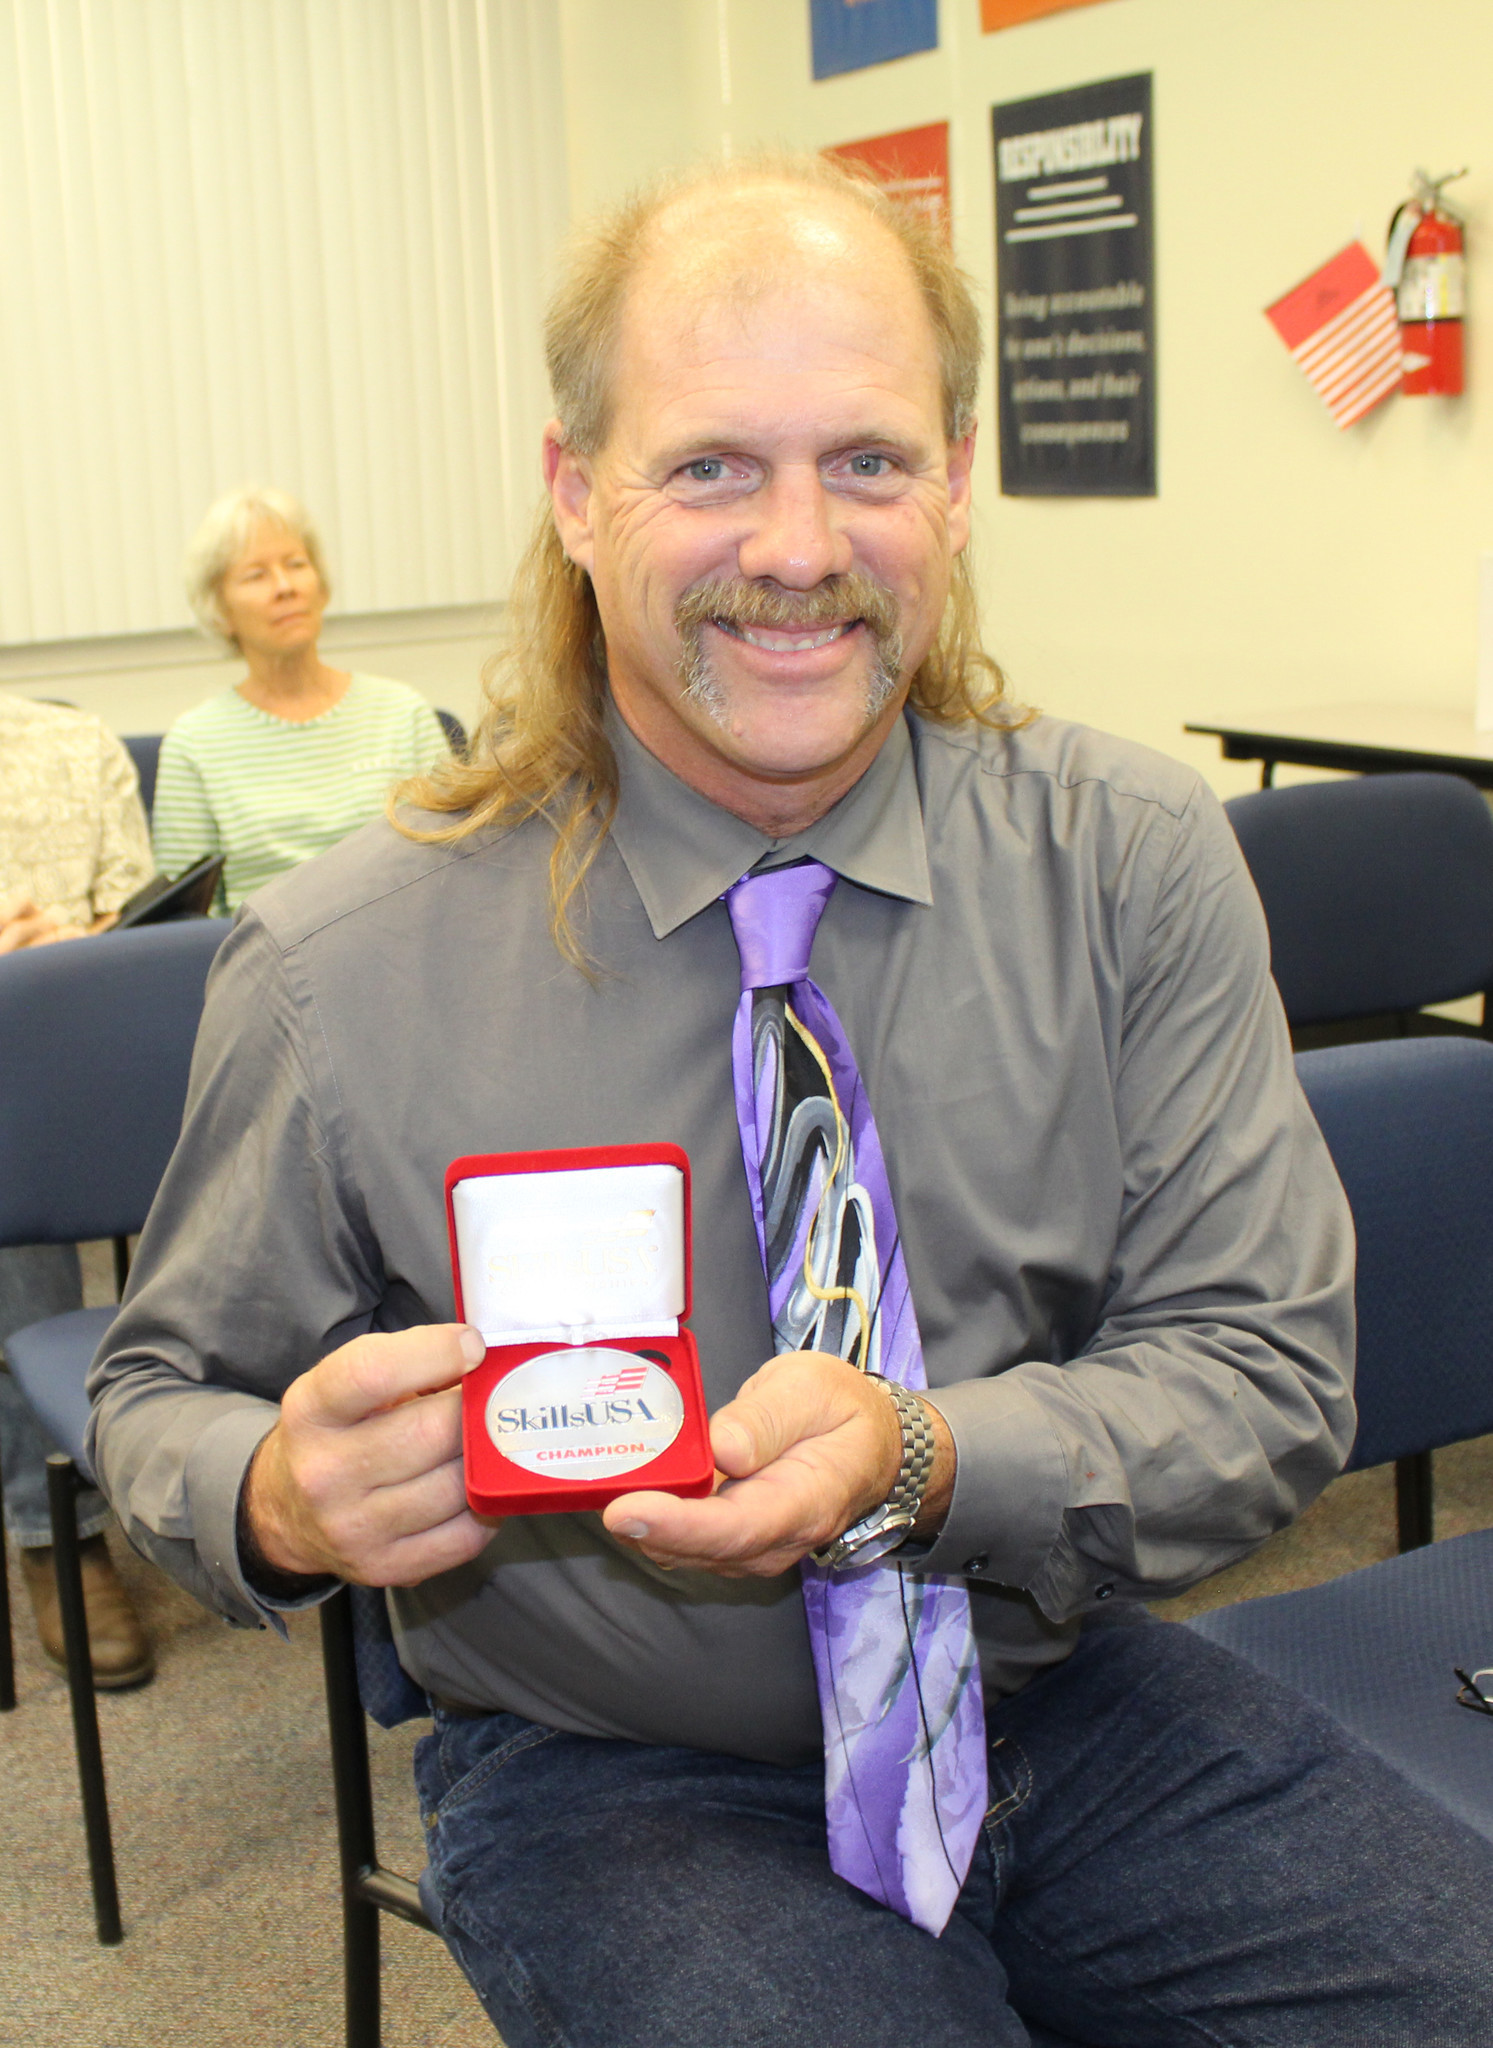 Ramona High School teacher Robert Grace shows the silver medal that Seth Levy earned at national SkillsUSA competition this summer.